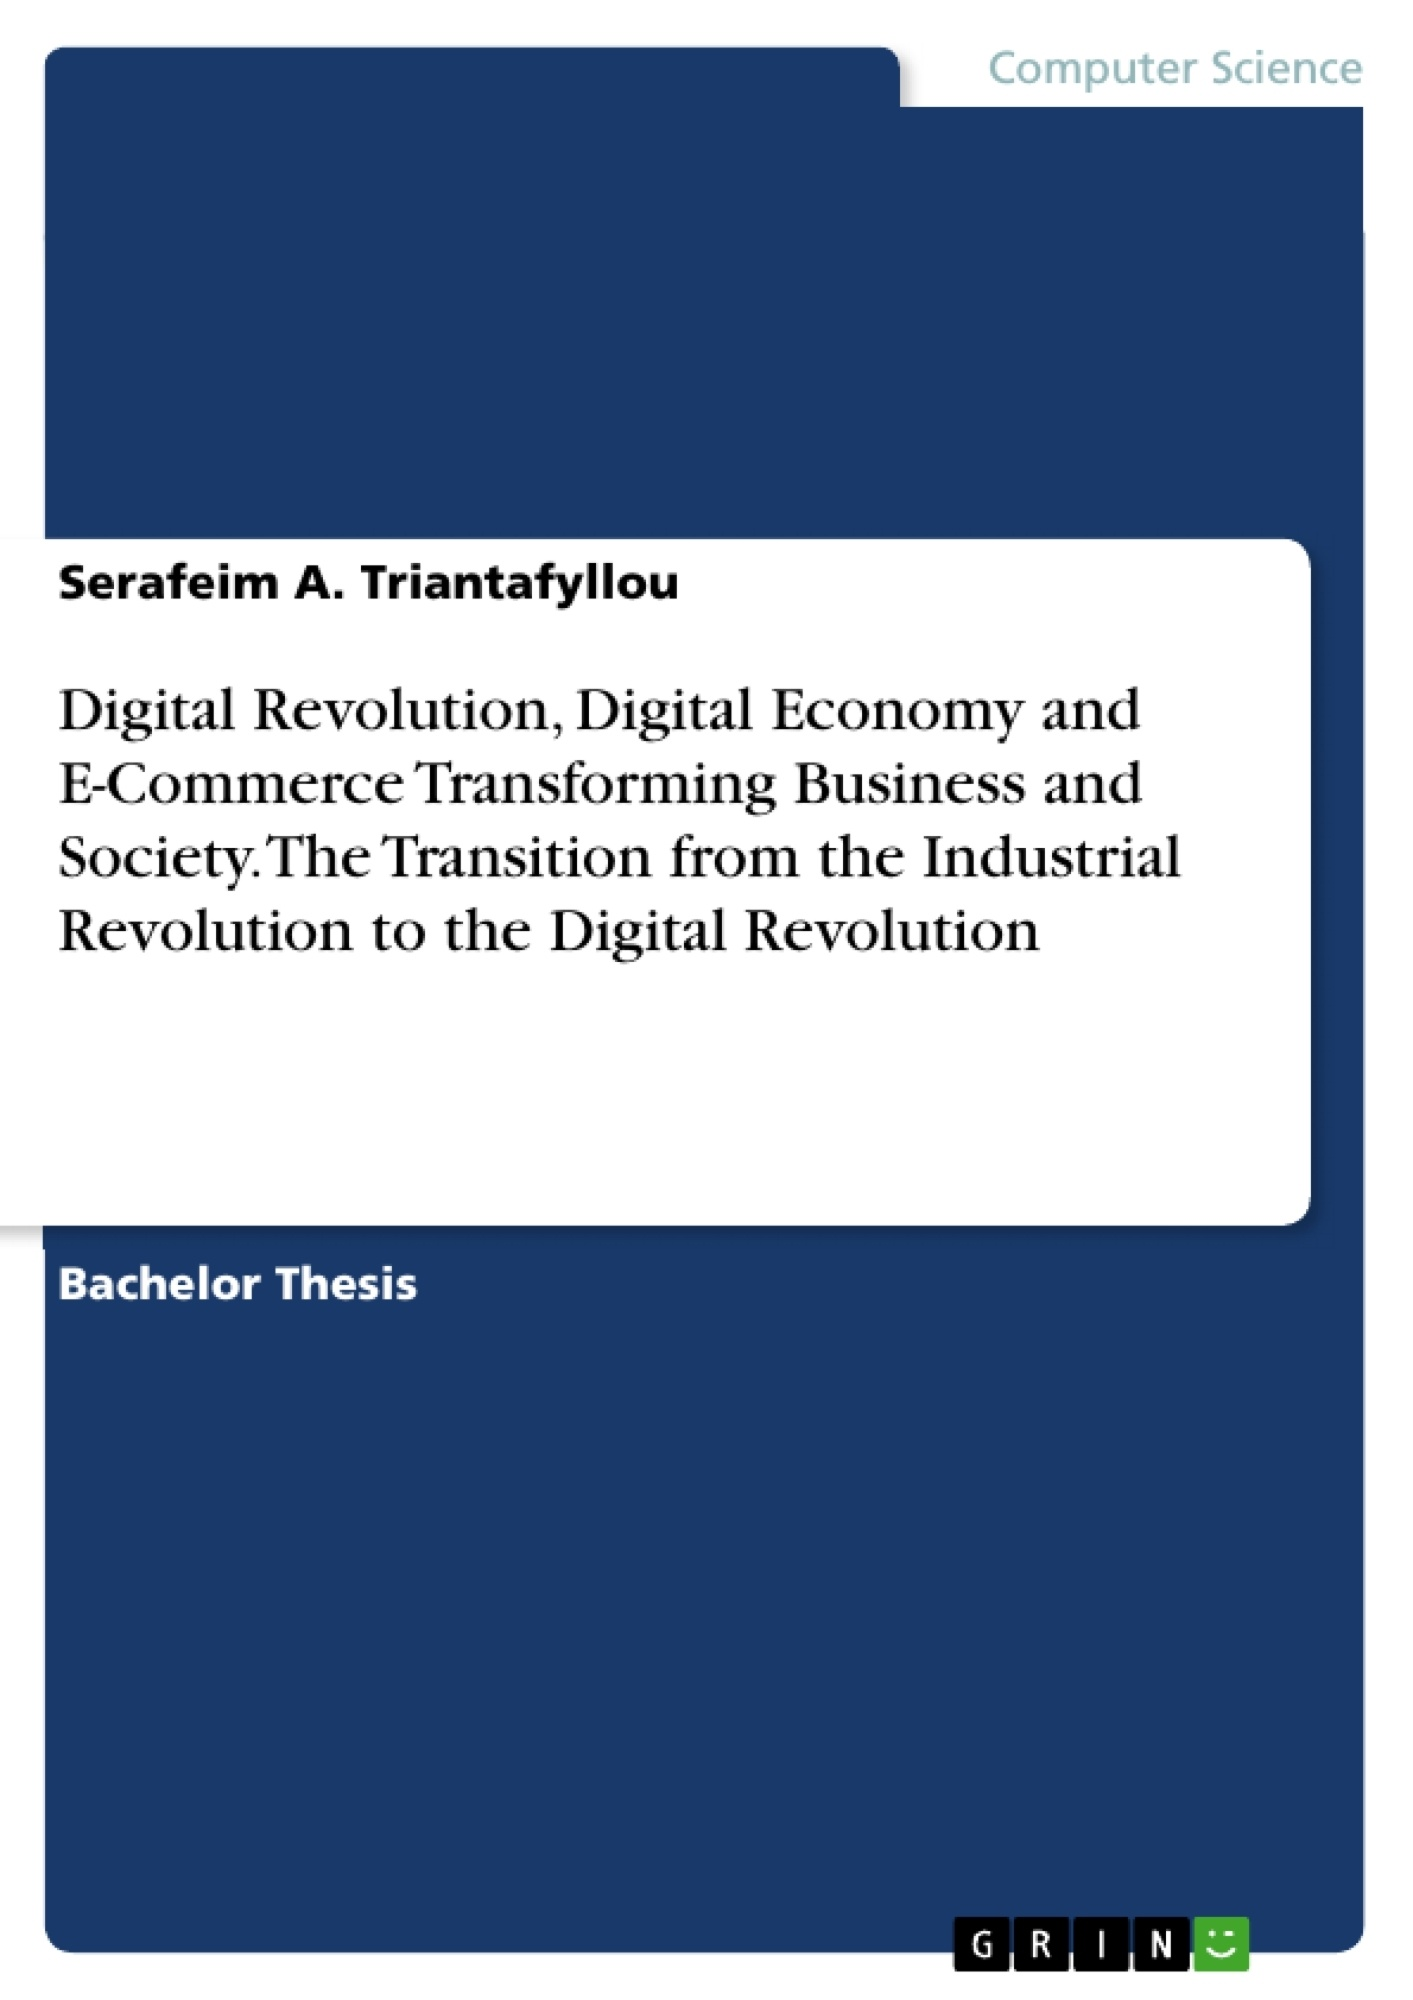 Title: Digital Revolution, Digital Economy and E-Commerce Transforming Business and Society. The Transition from the Industrial Revolution to the Digital Revolution